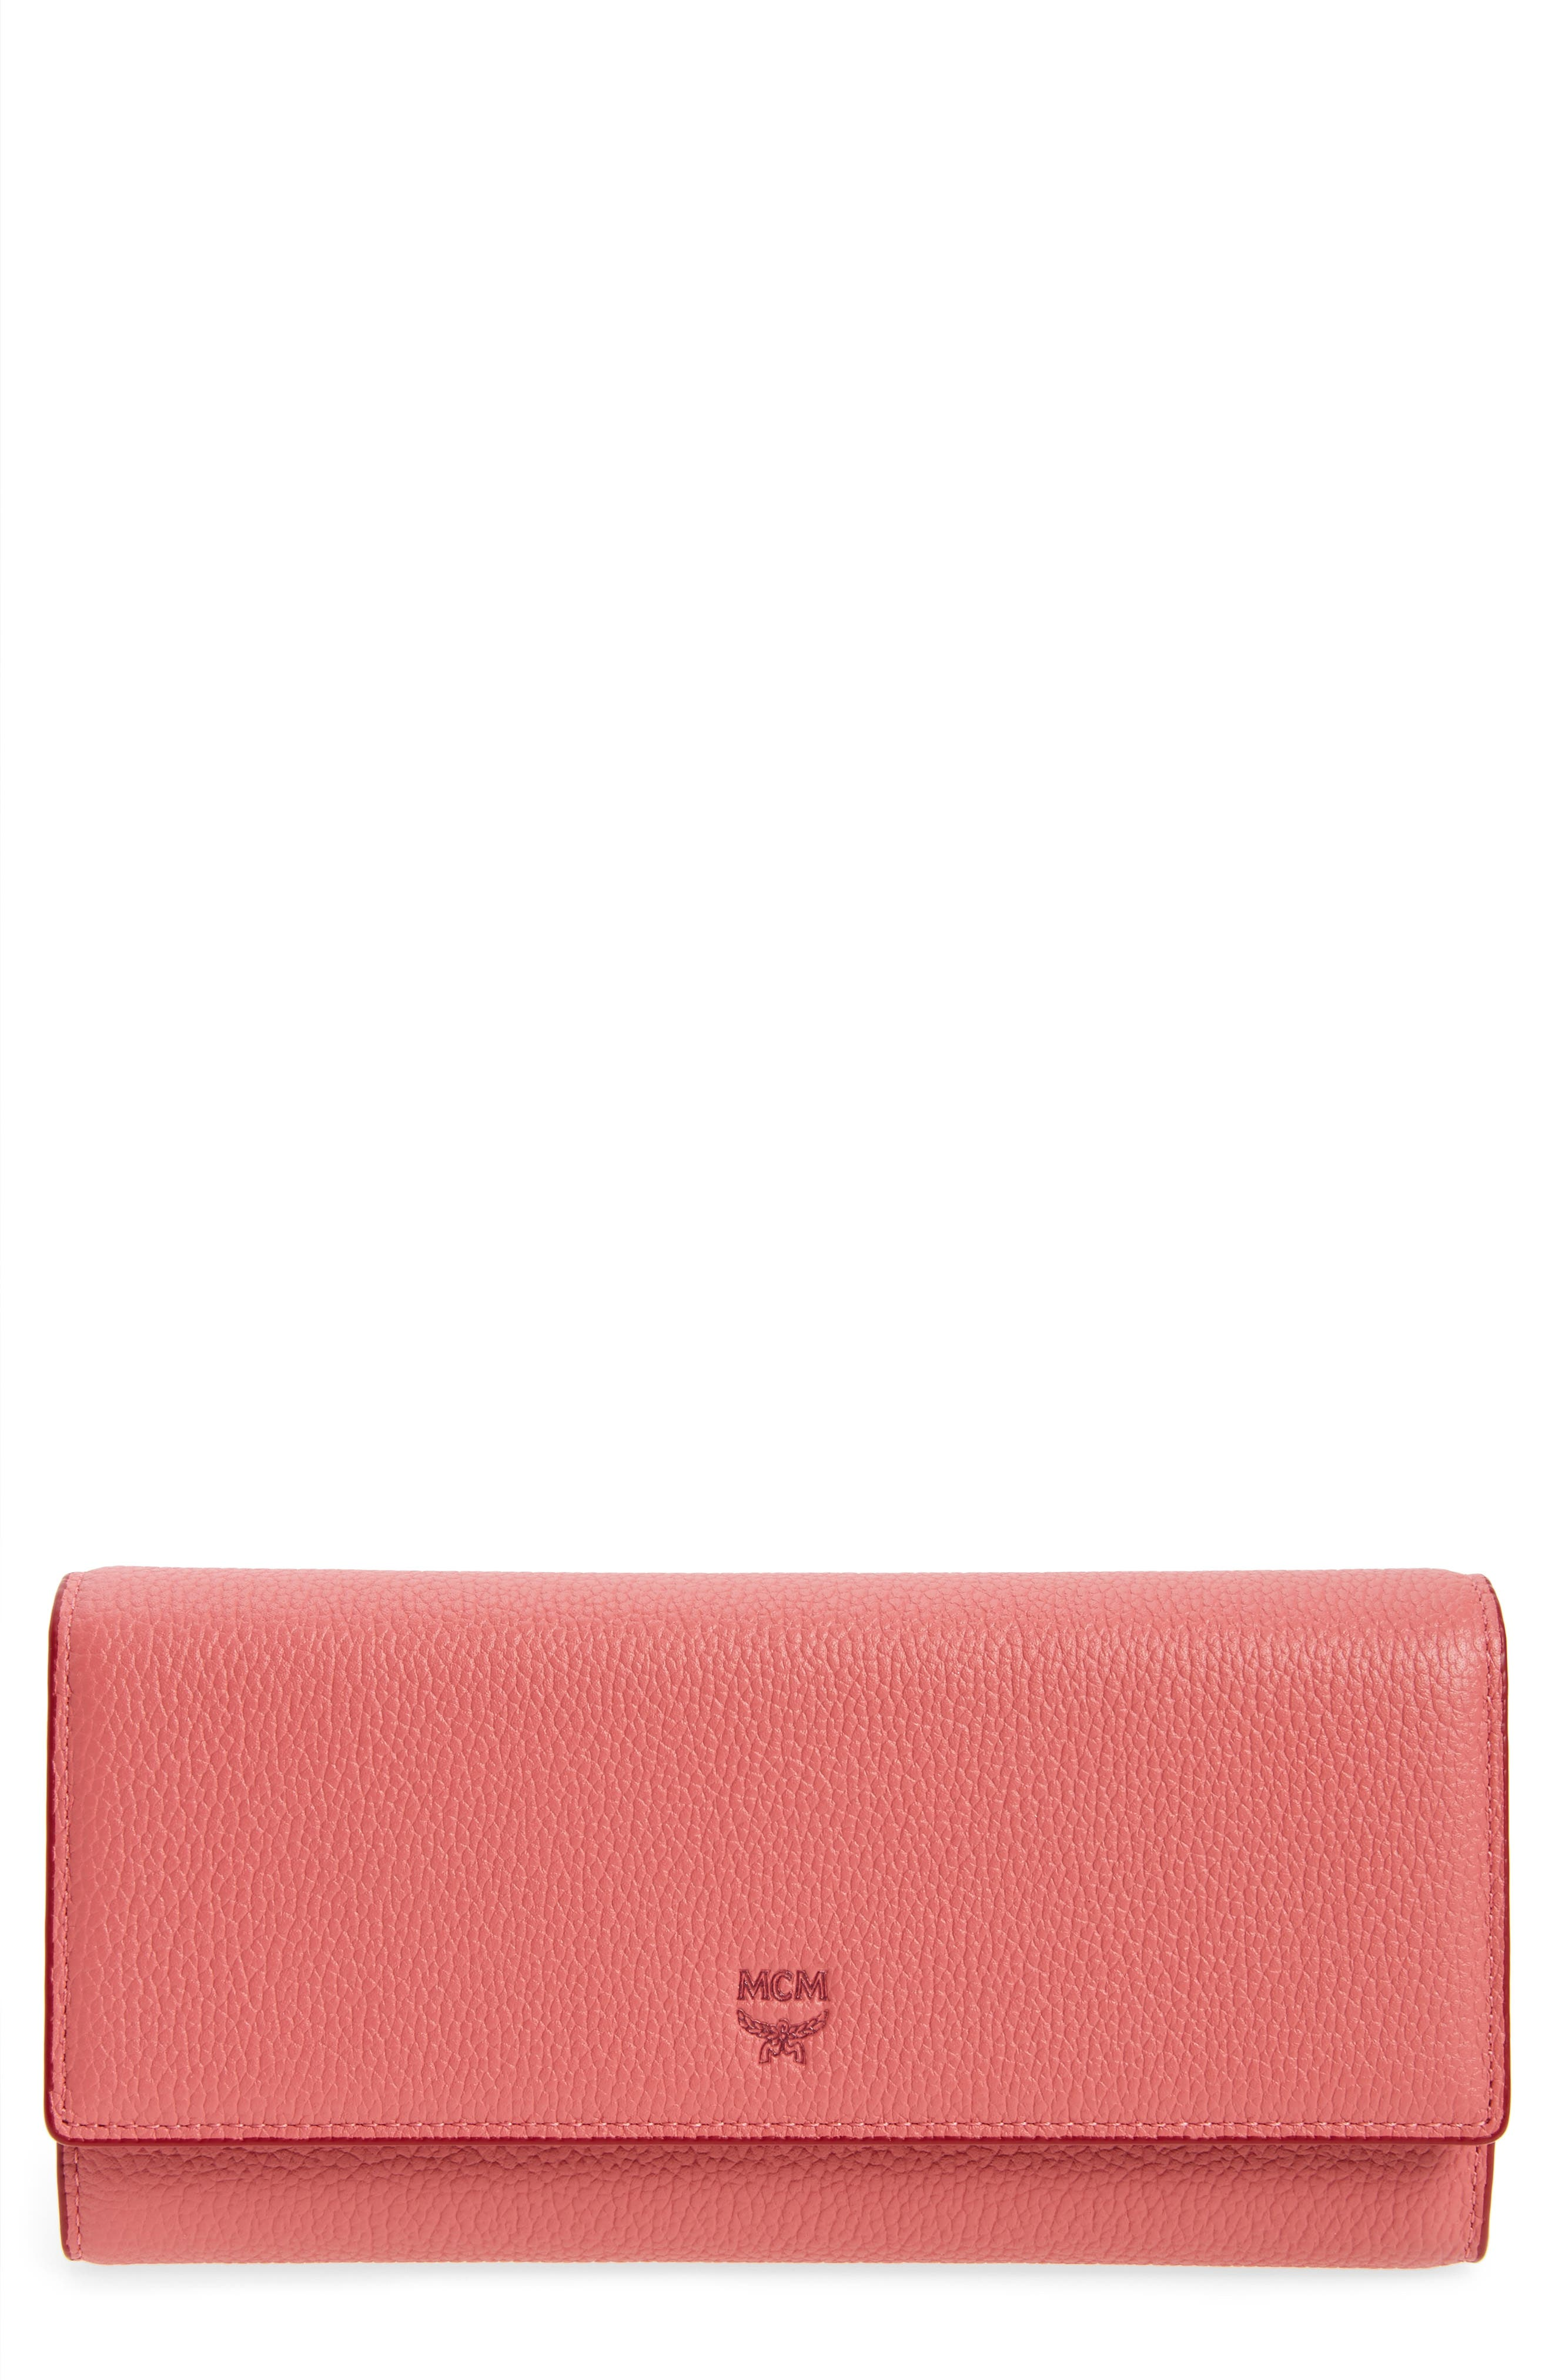 MCM Milla Leather Trifold Wallet